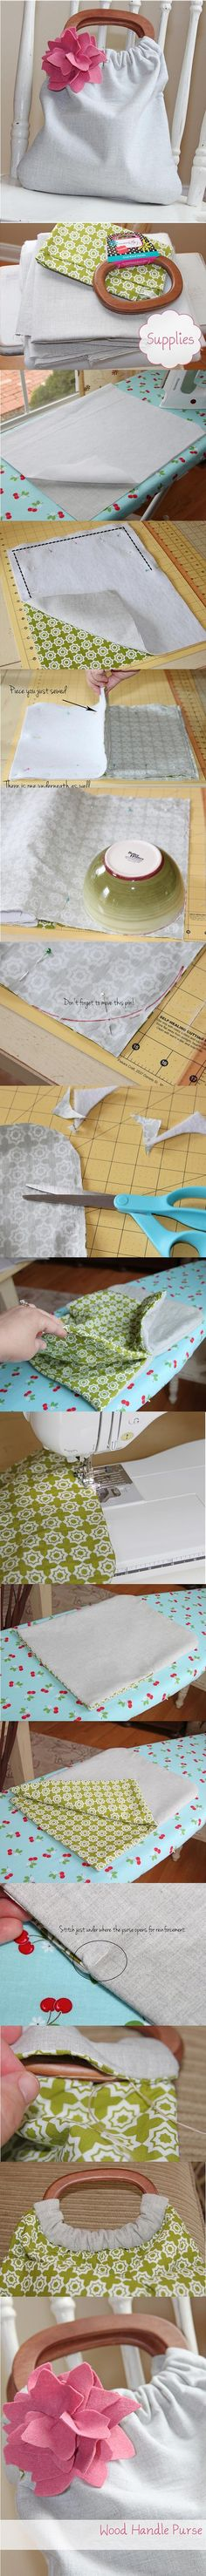 DIY: Bag Made With Wooden Handles And Material - inspiring picture on Joyzz.com